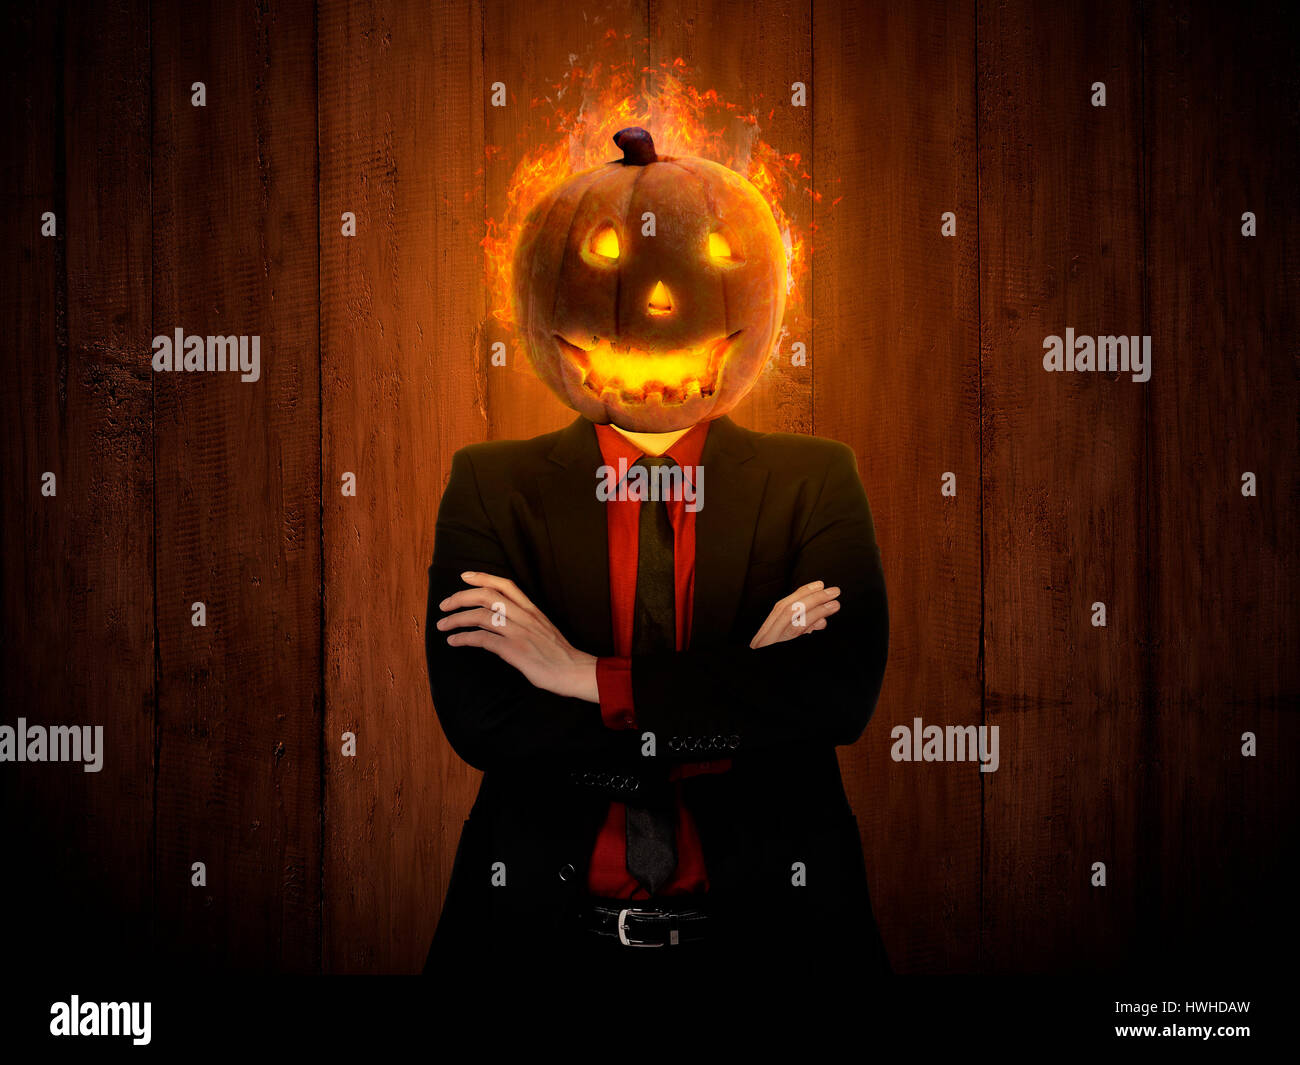 Halloween Maan.Spooky Man With Lantern Head Halloween Concept Stock Photo